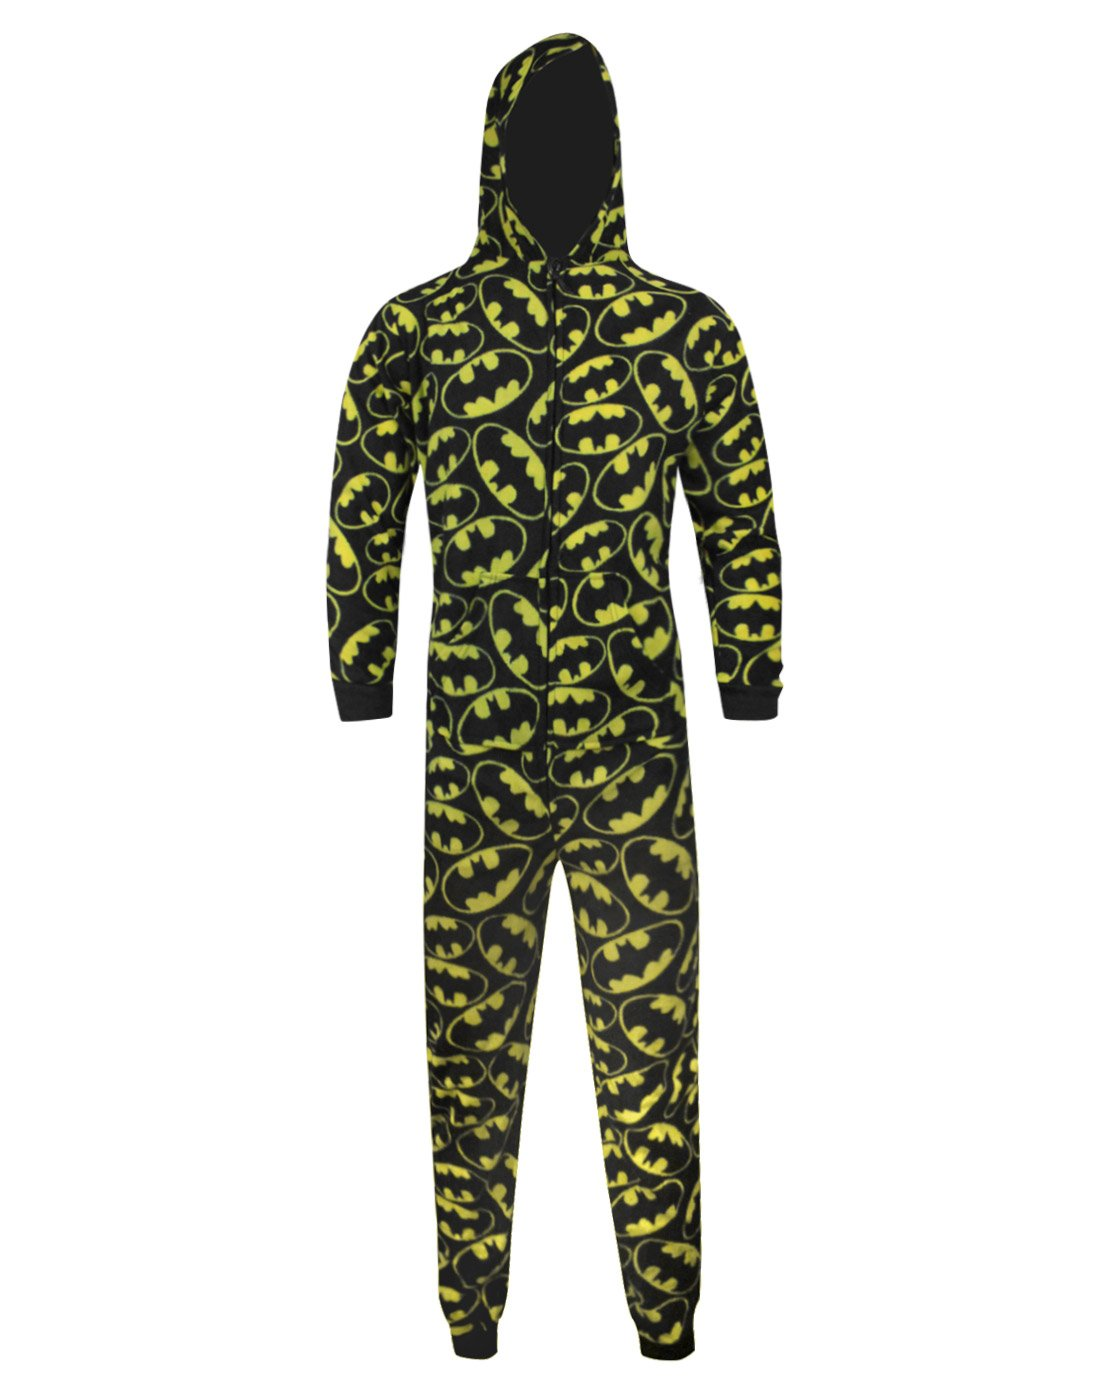 Official Batman Women's Onesie